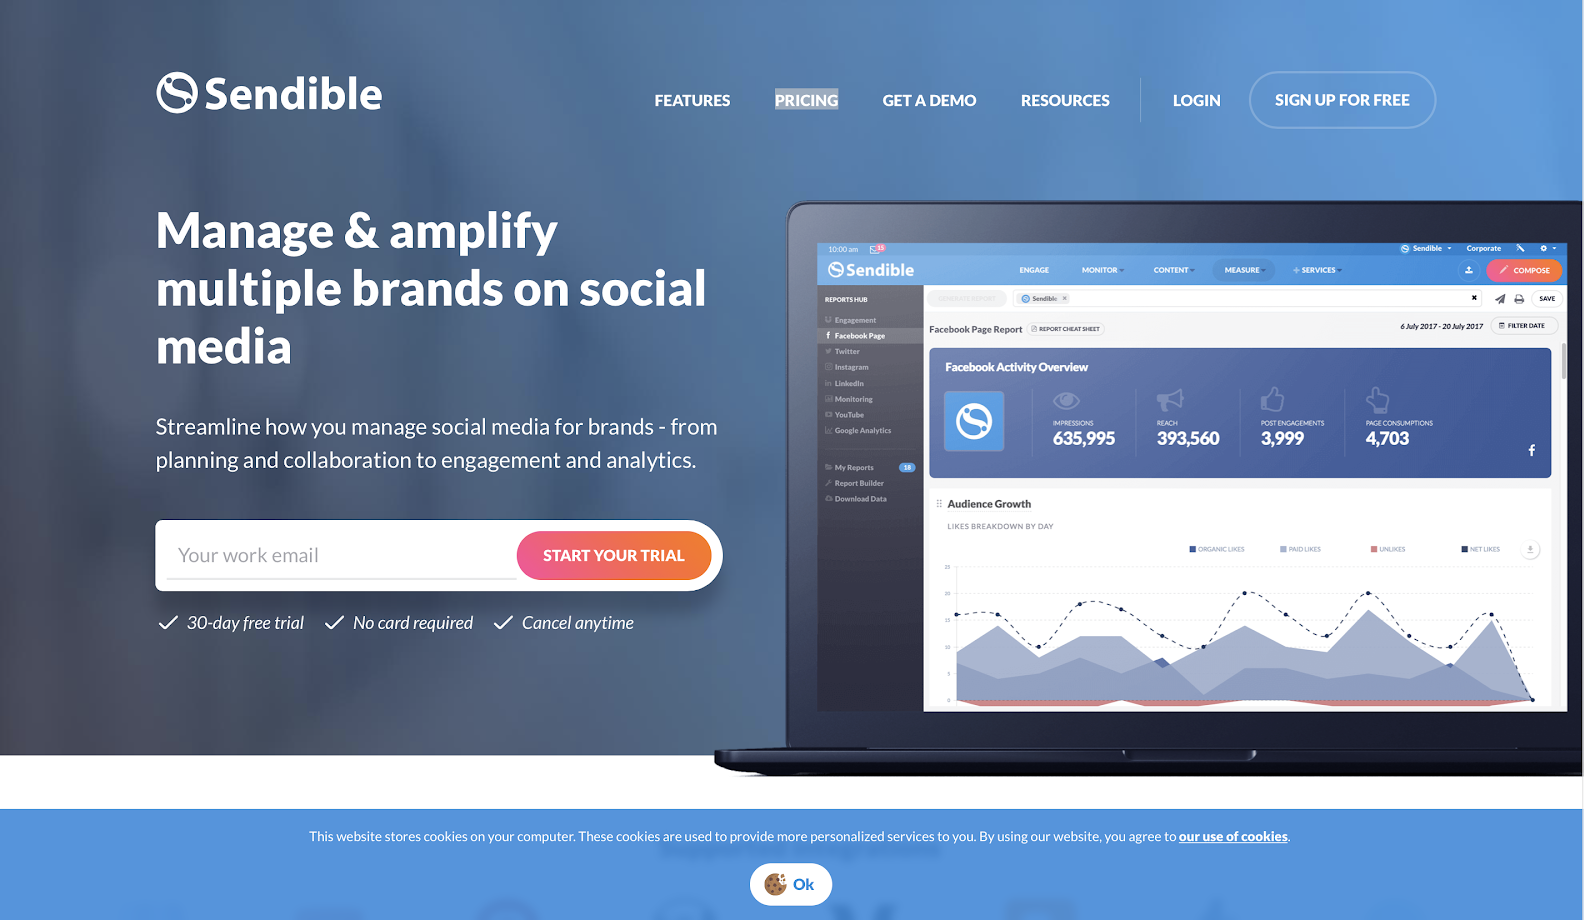 10 Of The Best Social Media Management Tools To Boost Your Campaign This 2020 sendible